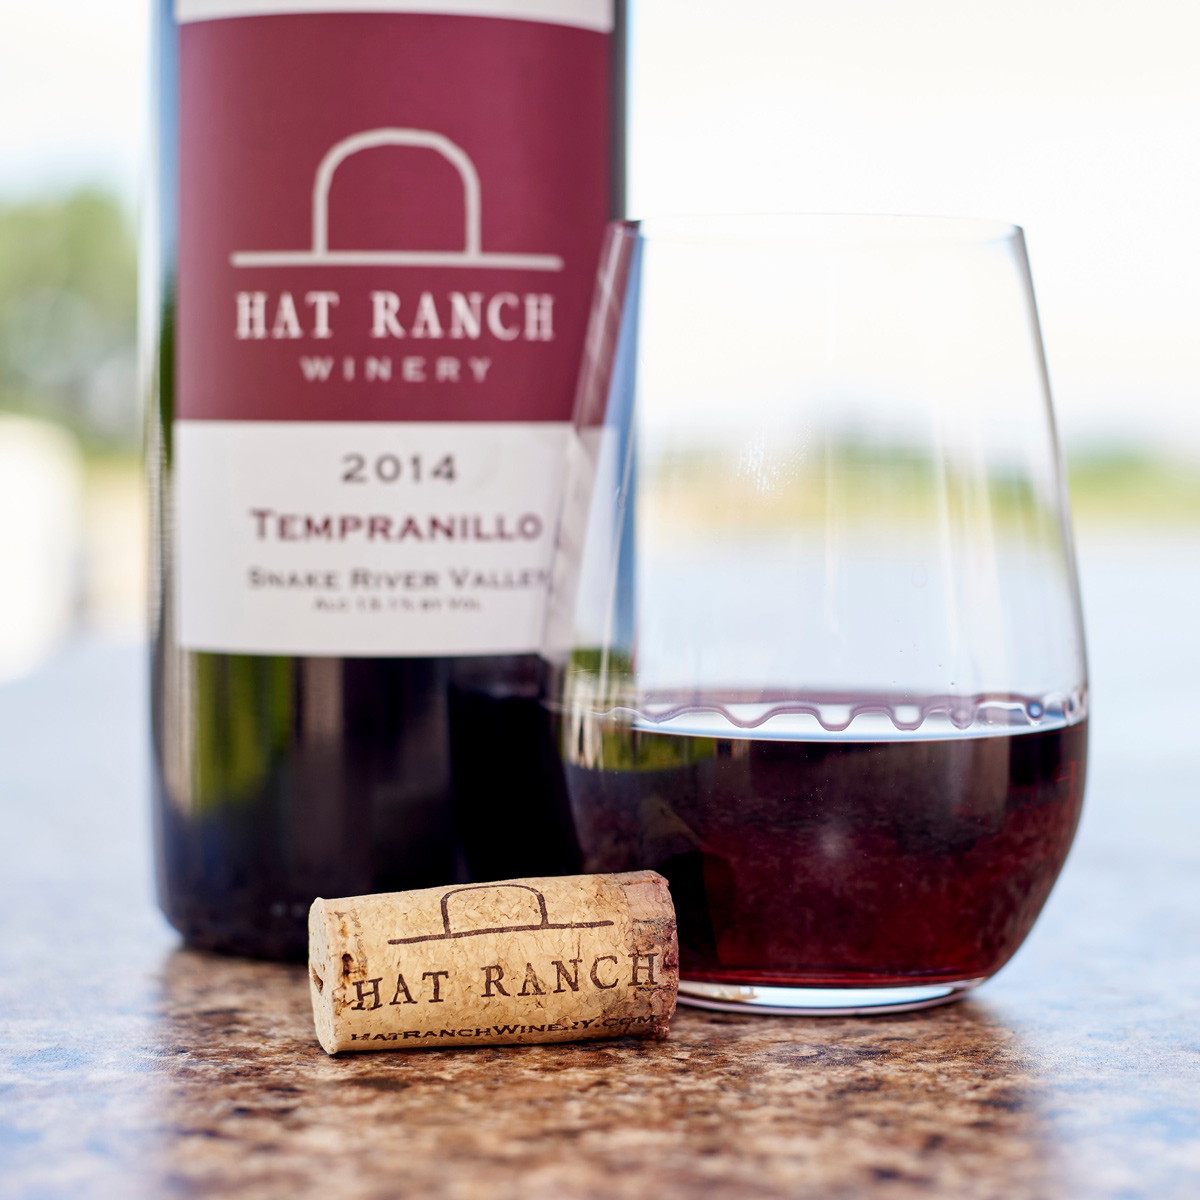 Hat ranch wine and a glass of wine.